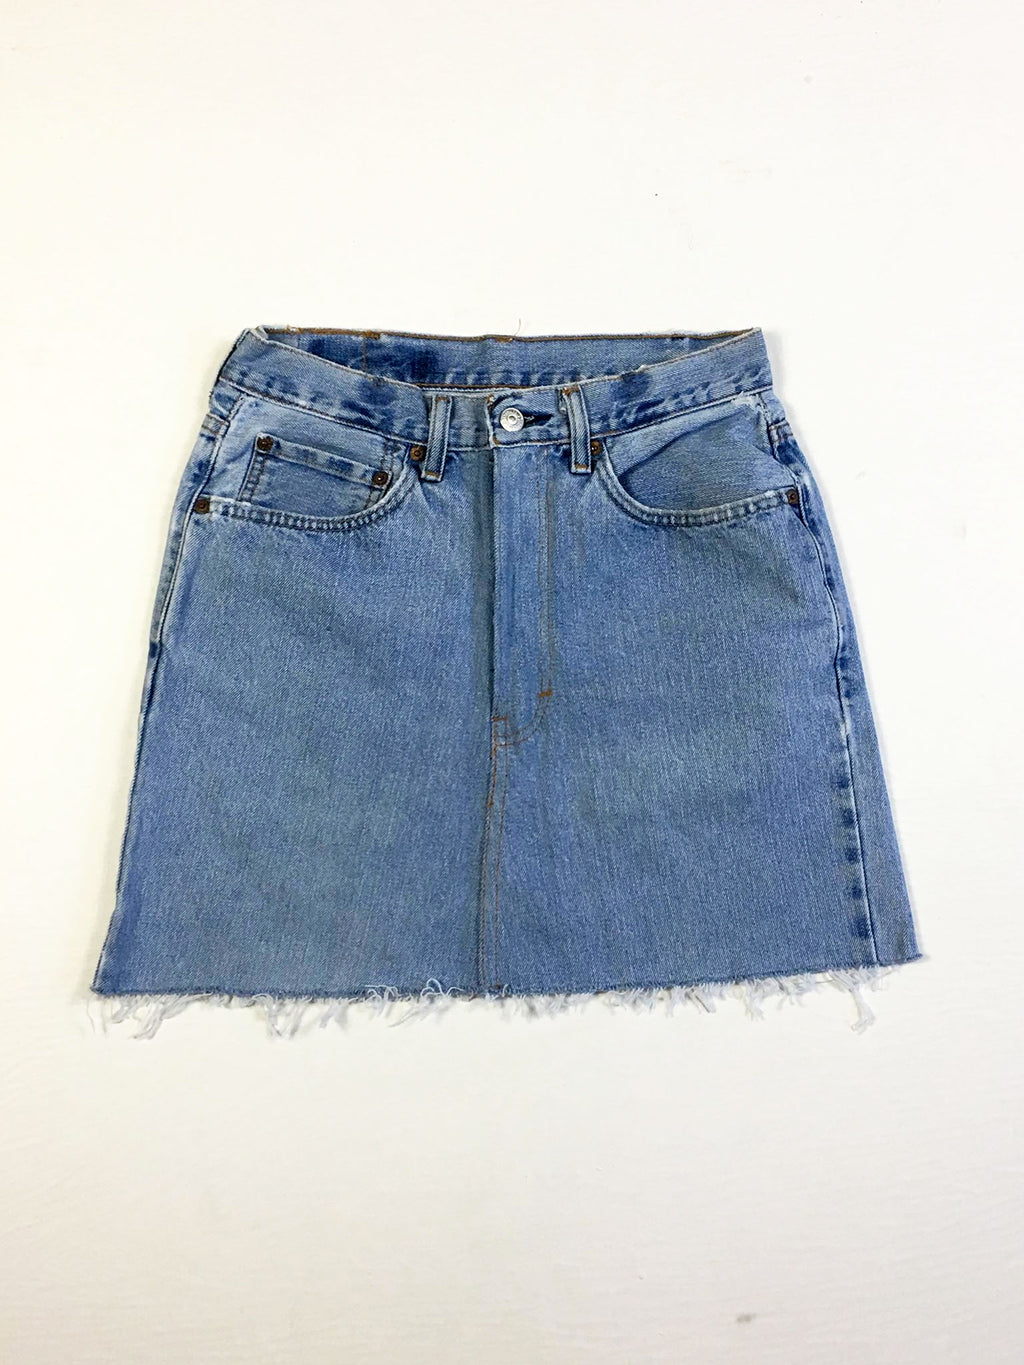 VINTAGE LEVI DENIM SKIRT - STRAIGHT STITCH - BLEACHED DENIM